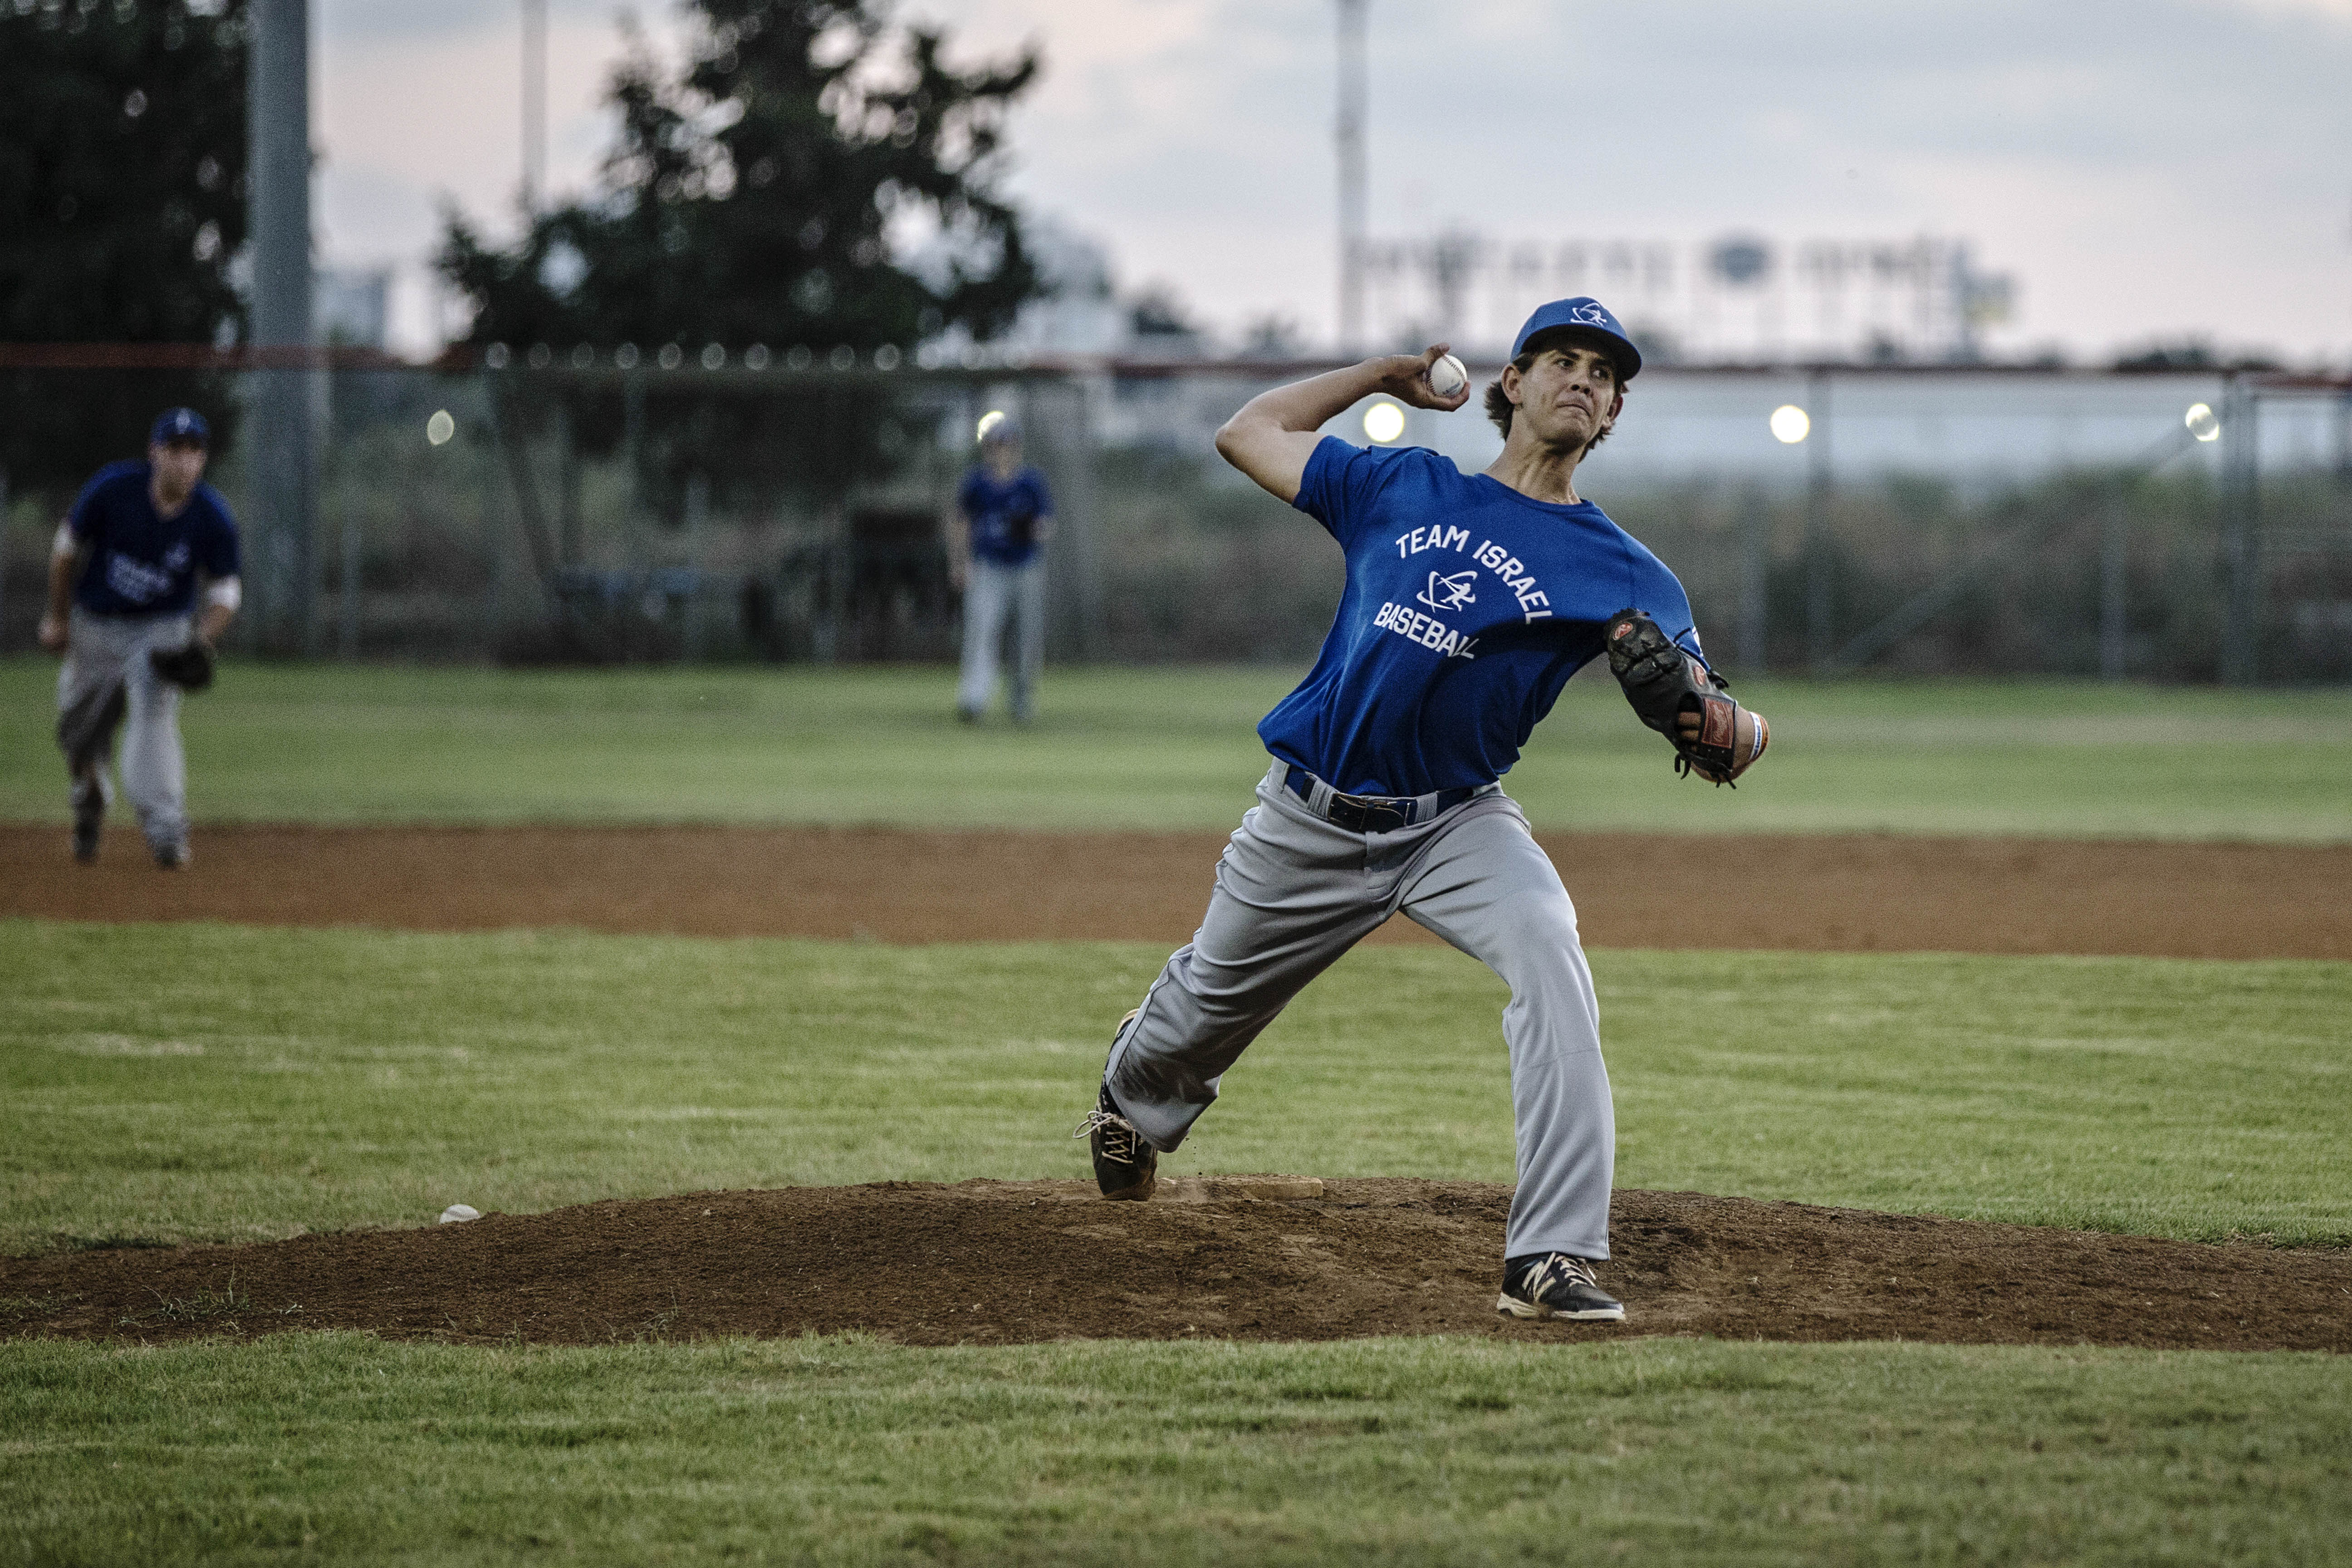 In this Monday, July 20, 2015 photo, Israel baseball team pitcher Dean Kremer pitches during training near the city of Petah Tikva, Israel. The 6-foot-2 Kremer is the golden boy of Israeli baseball, the first citizen to be selected in the major league dra